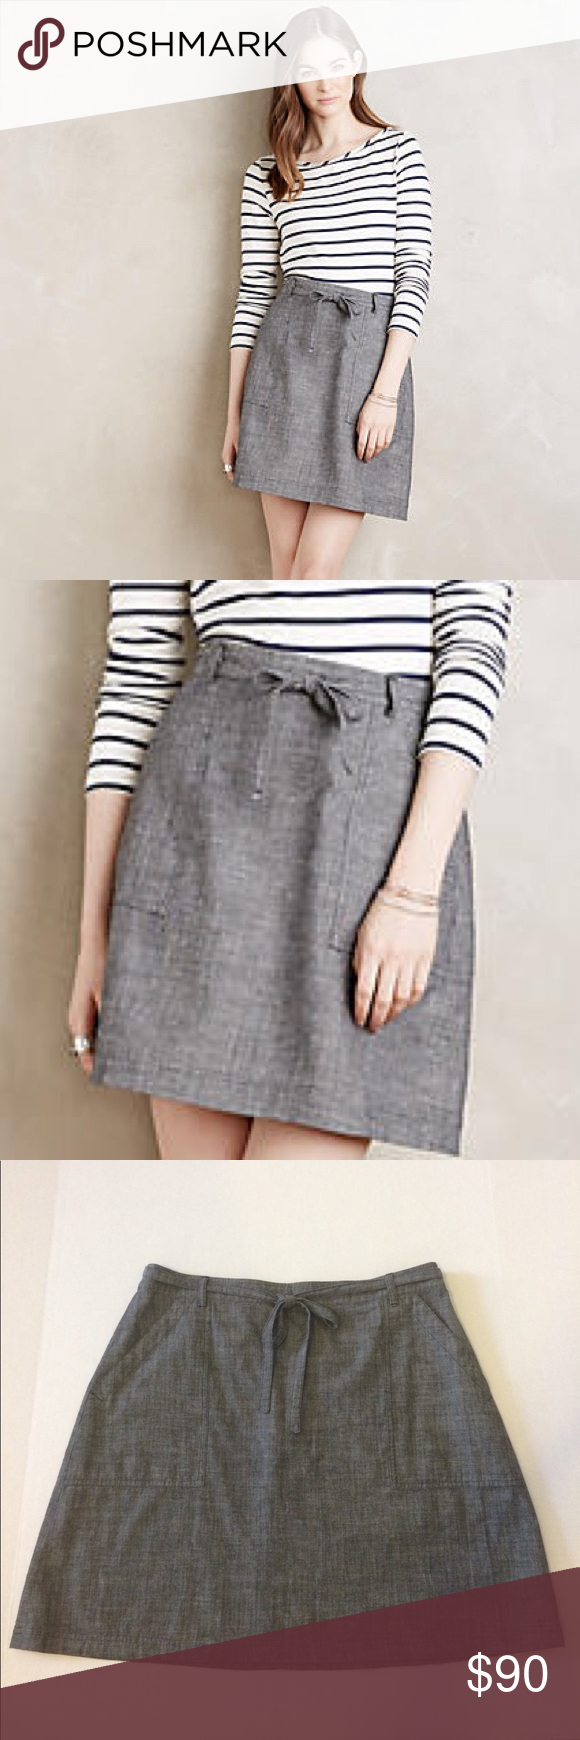 """Anthropologie M.i.h Jeans 'Nanterre' Skirt NWT M.i.h Nanterre chambray skirt in Black/Noir. 100% cotton. Exposed rear zipper closure. Attached tie at the waist. Front patch pockets. Waist 16"""" flat across. Length 19"""". Measurements are approximate. NWT. Anthropologie Skirts"""